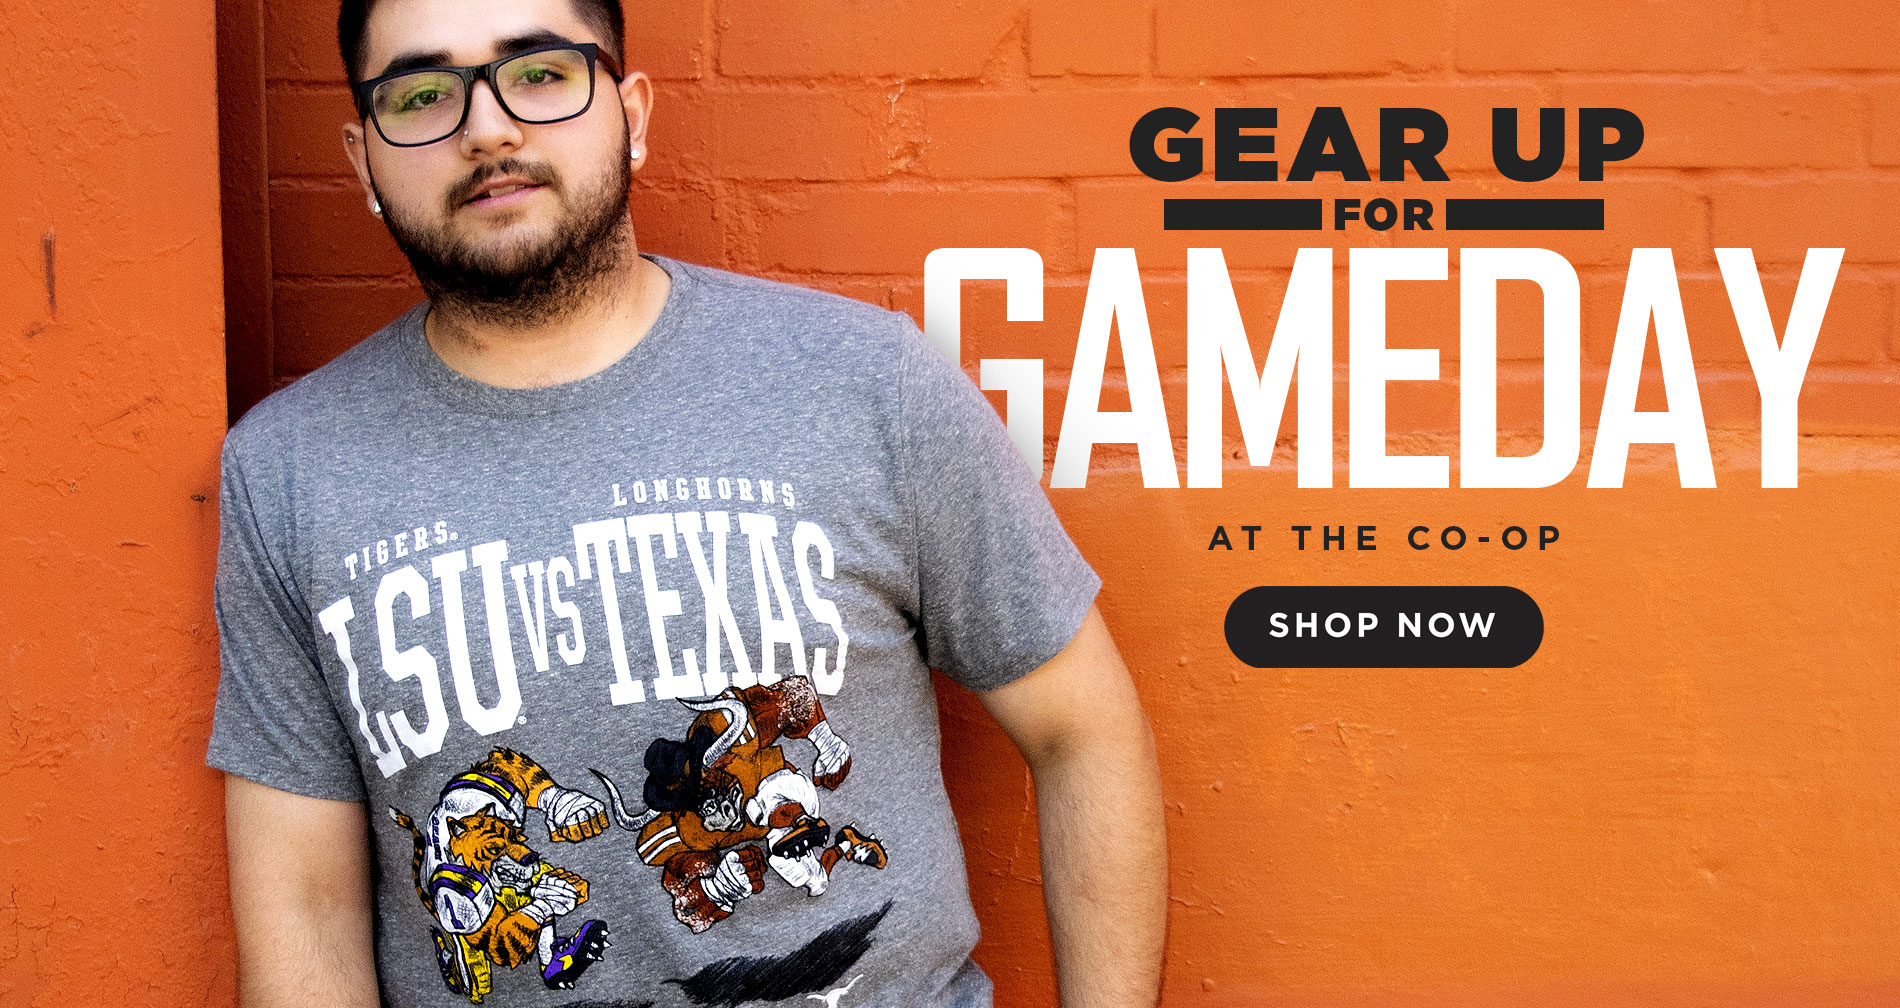 Gear up for gameday